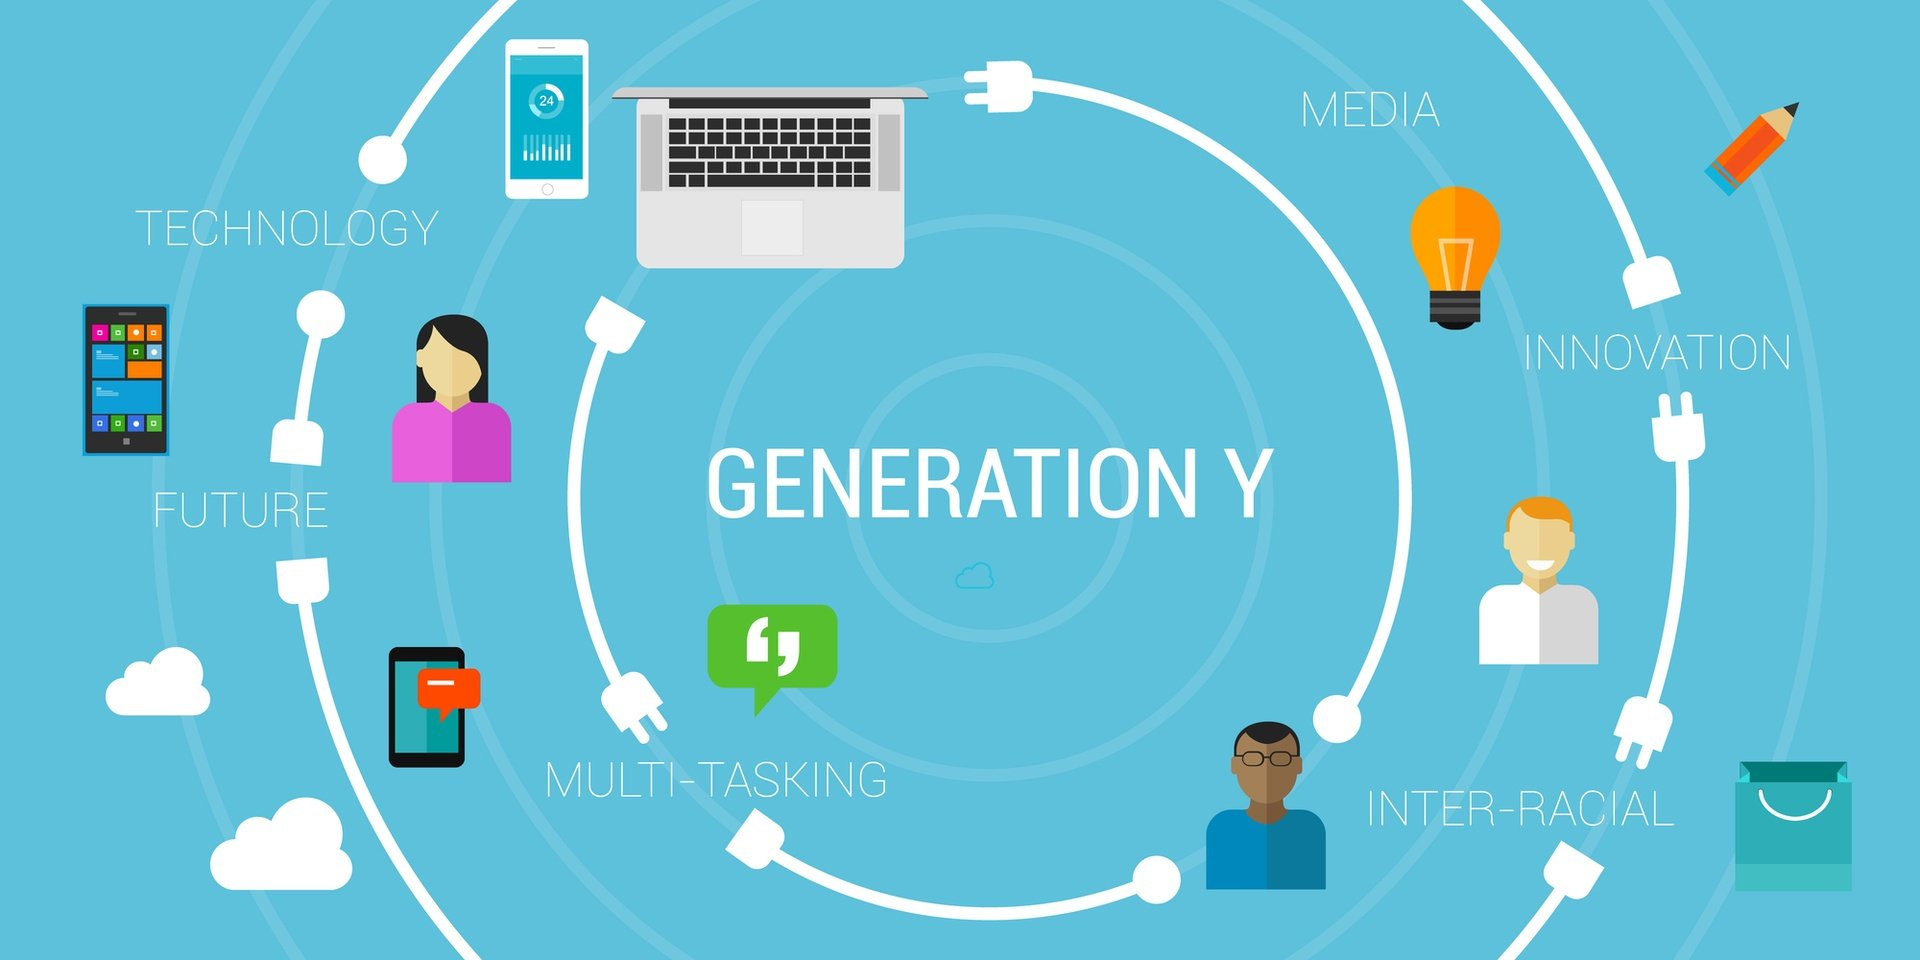 Millennials want eLearning that is innovative, uses multi-media, and has strong storylines and enteratainment value.